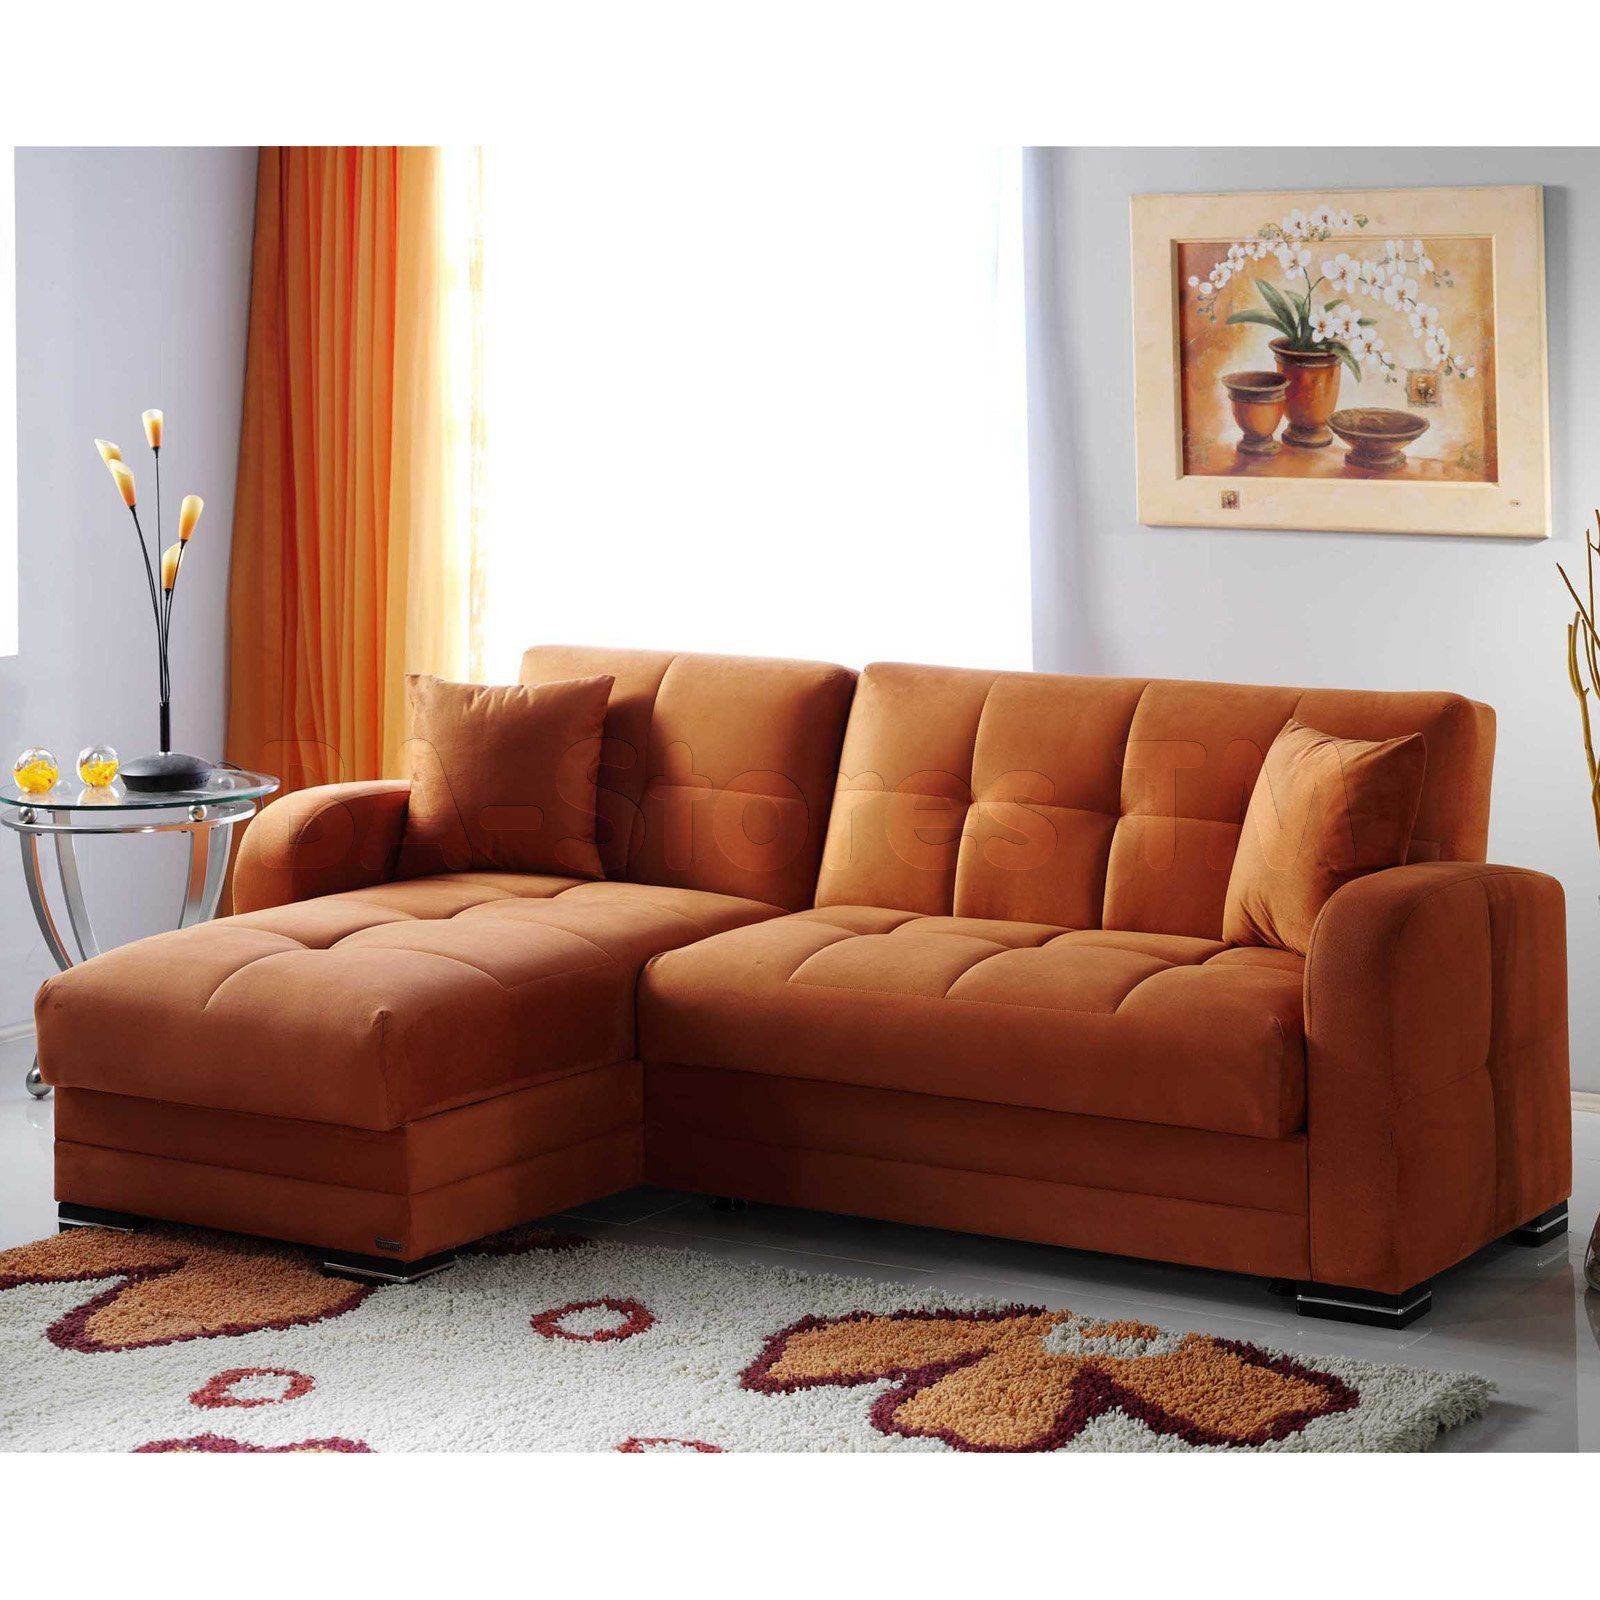 Dat Orange Velvet Microfiber Sectional Sofa Sectional Sofa